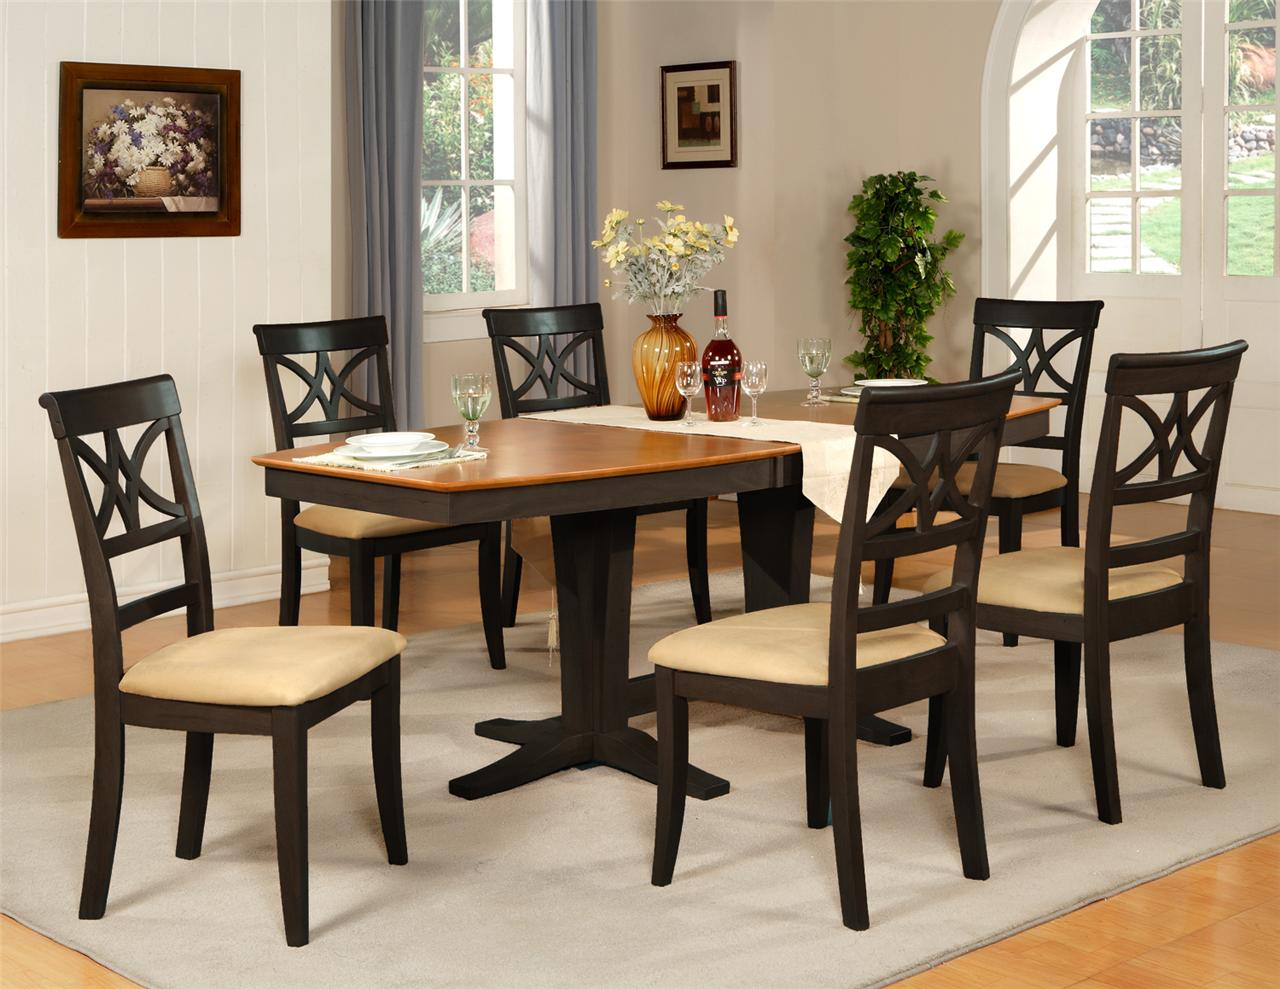 dining room furniture sets with terrific design for dining room interior  design YSAIBYC